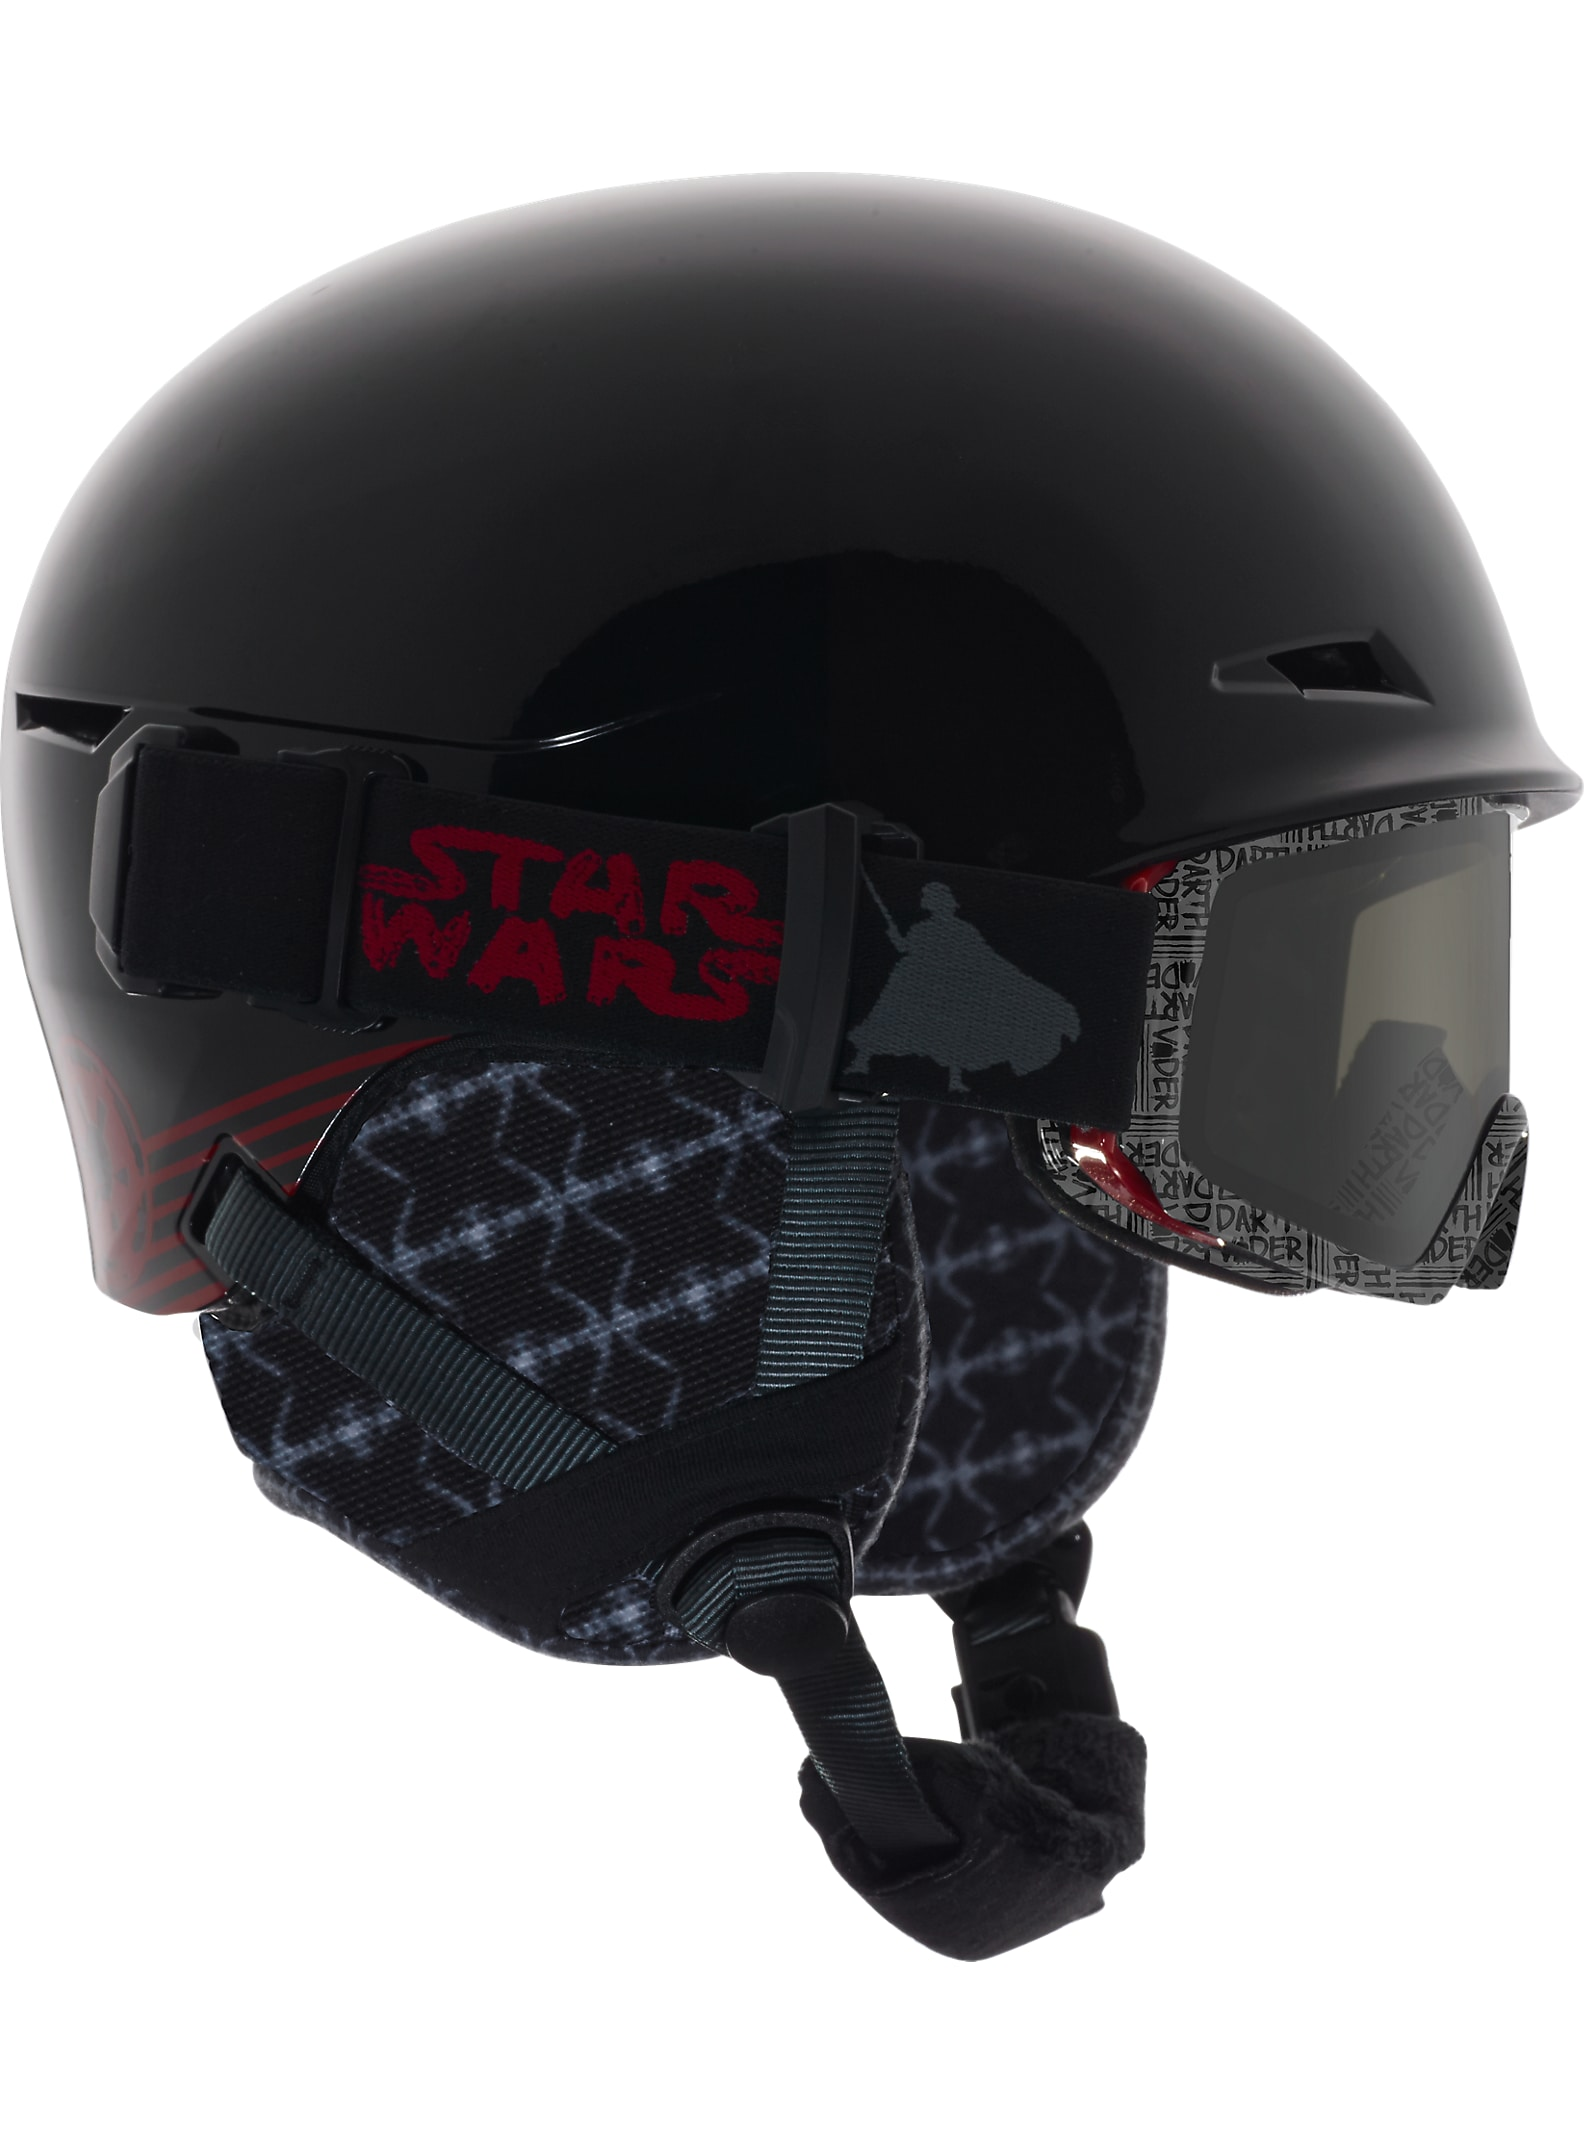 Star Wars anon. - Casque Define affichage en Darth Vader